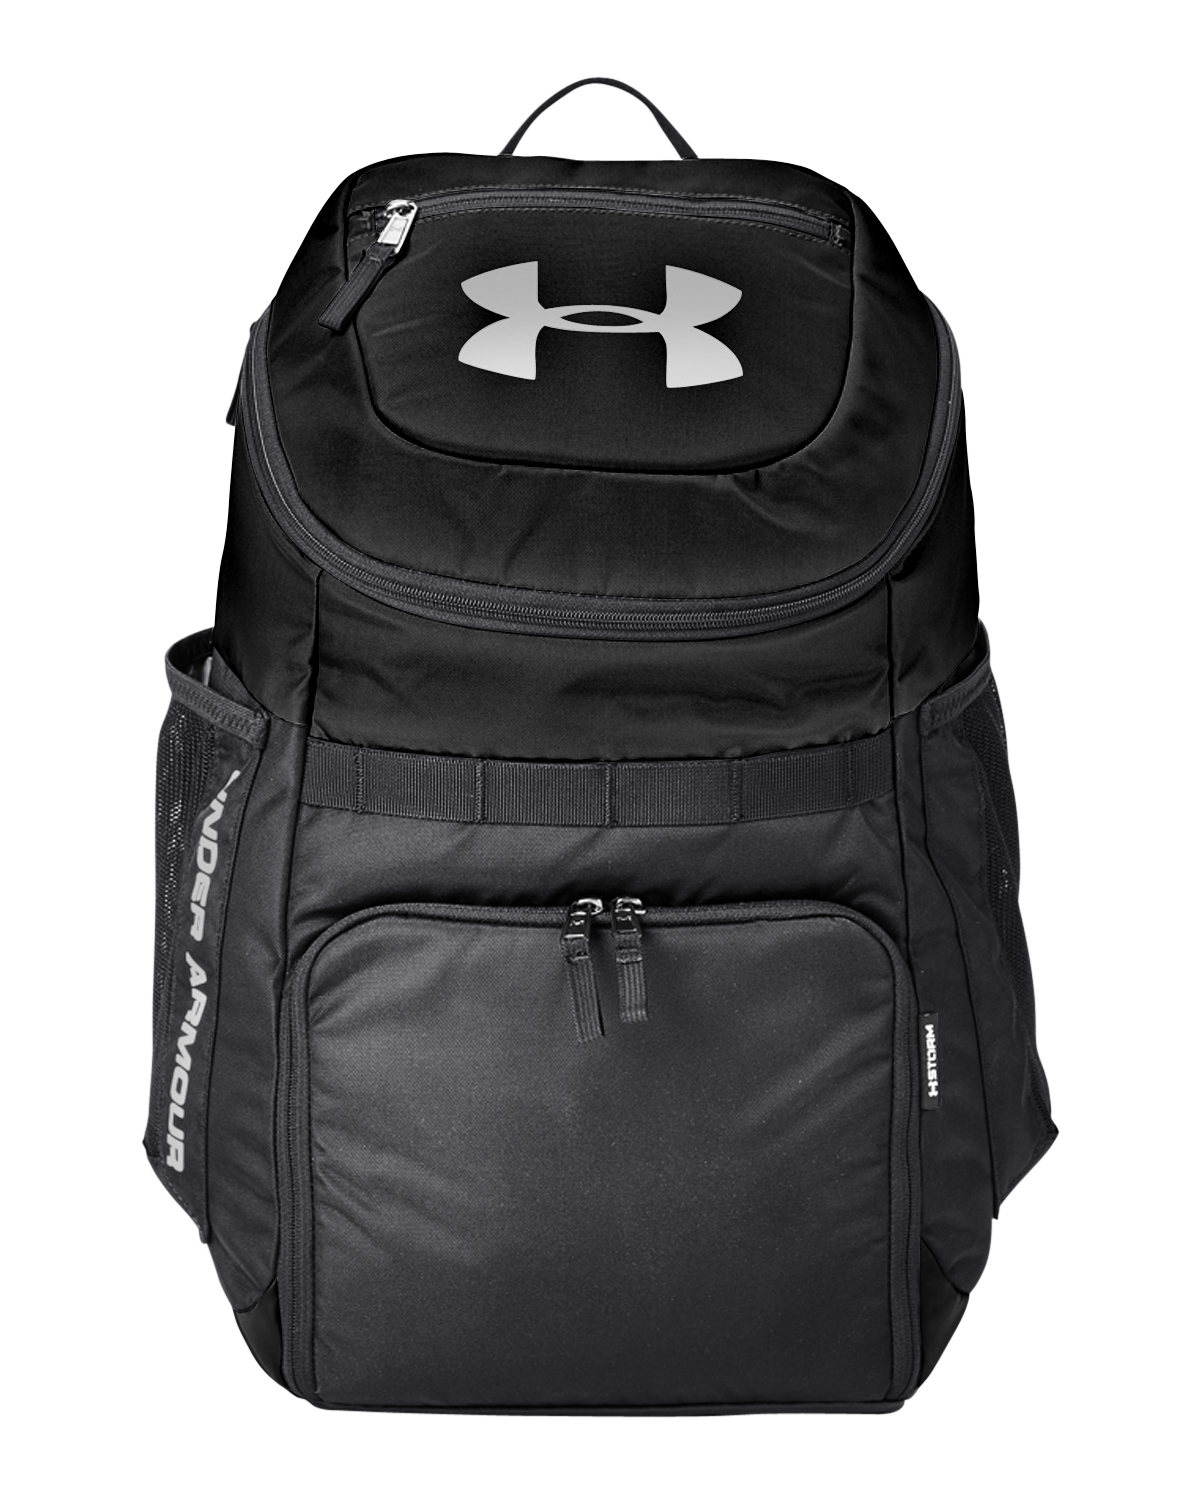 Under Armour 1309353 - UA Undeniable Backpack